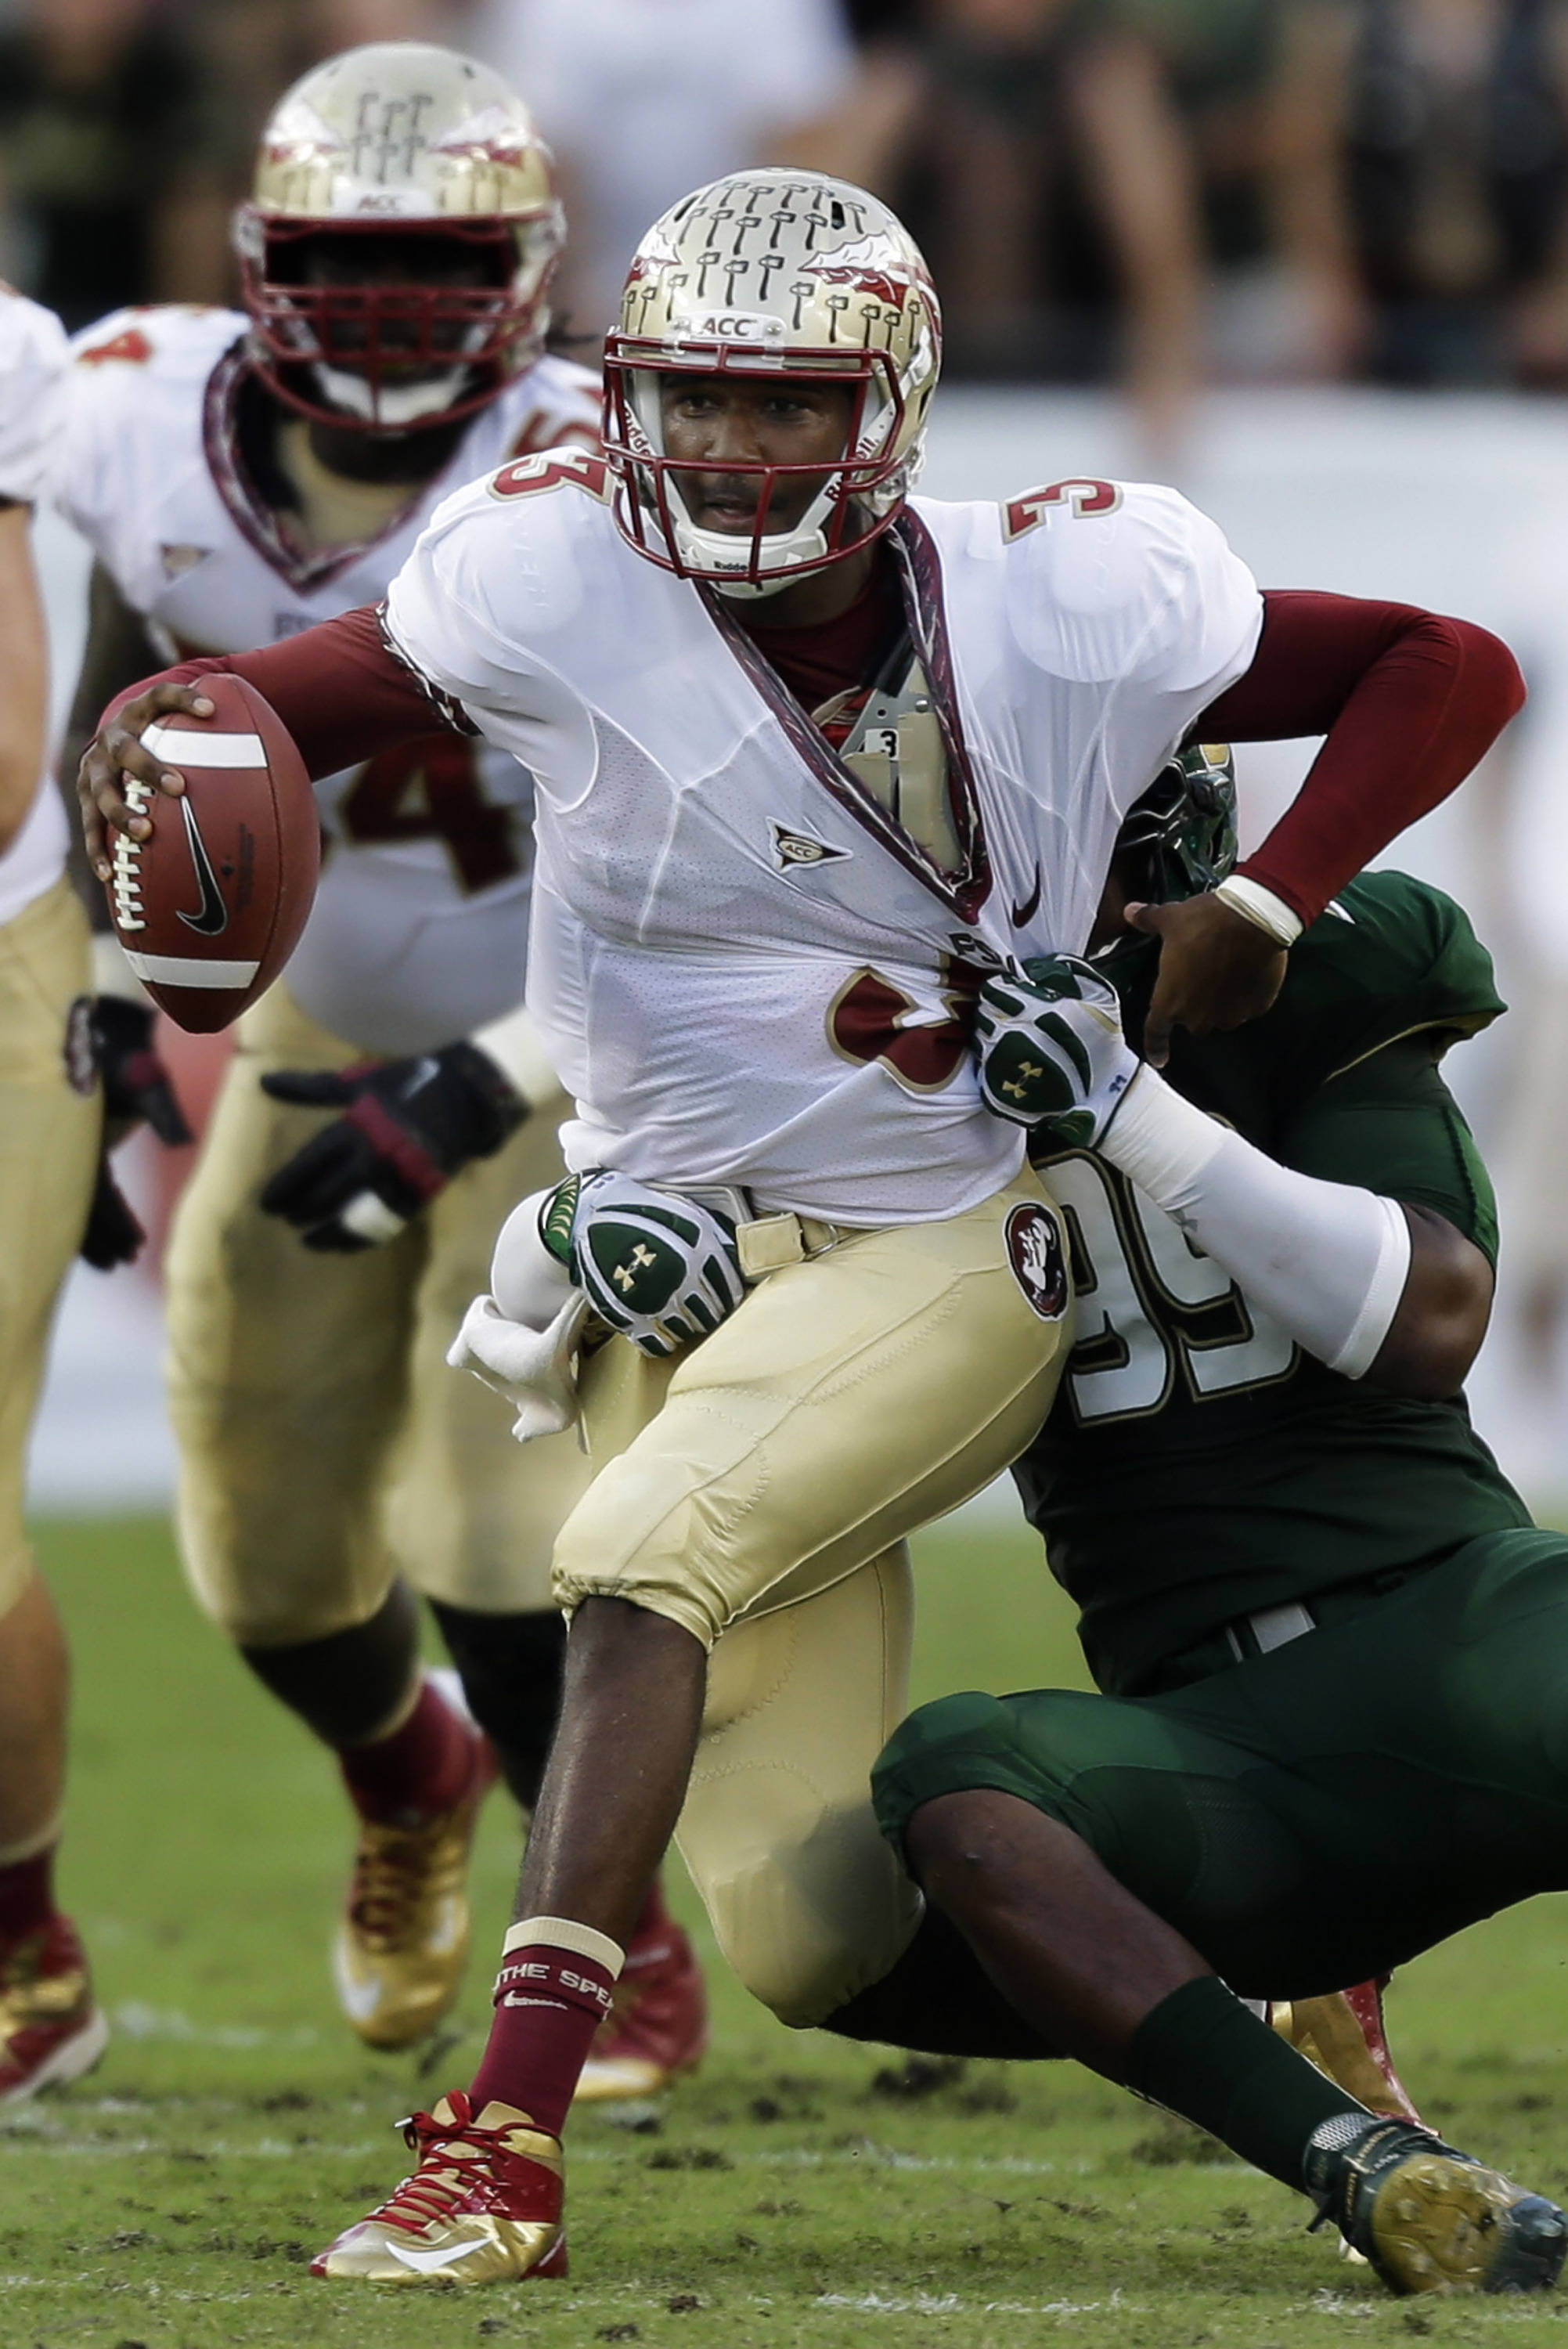 Florida State quarterback EJ Manuel (3) gets sacked by South Florida defensive lineman Tevin Mims (99) during the first quarter. (AP Photo/Chris O'Meara)